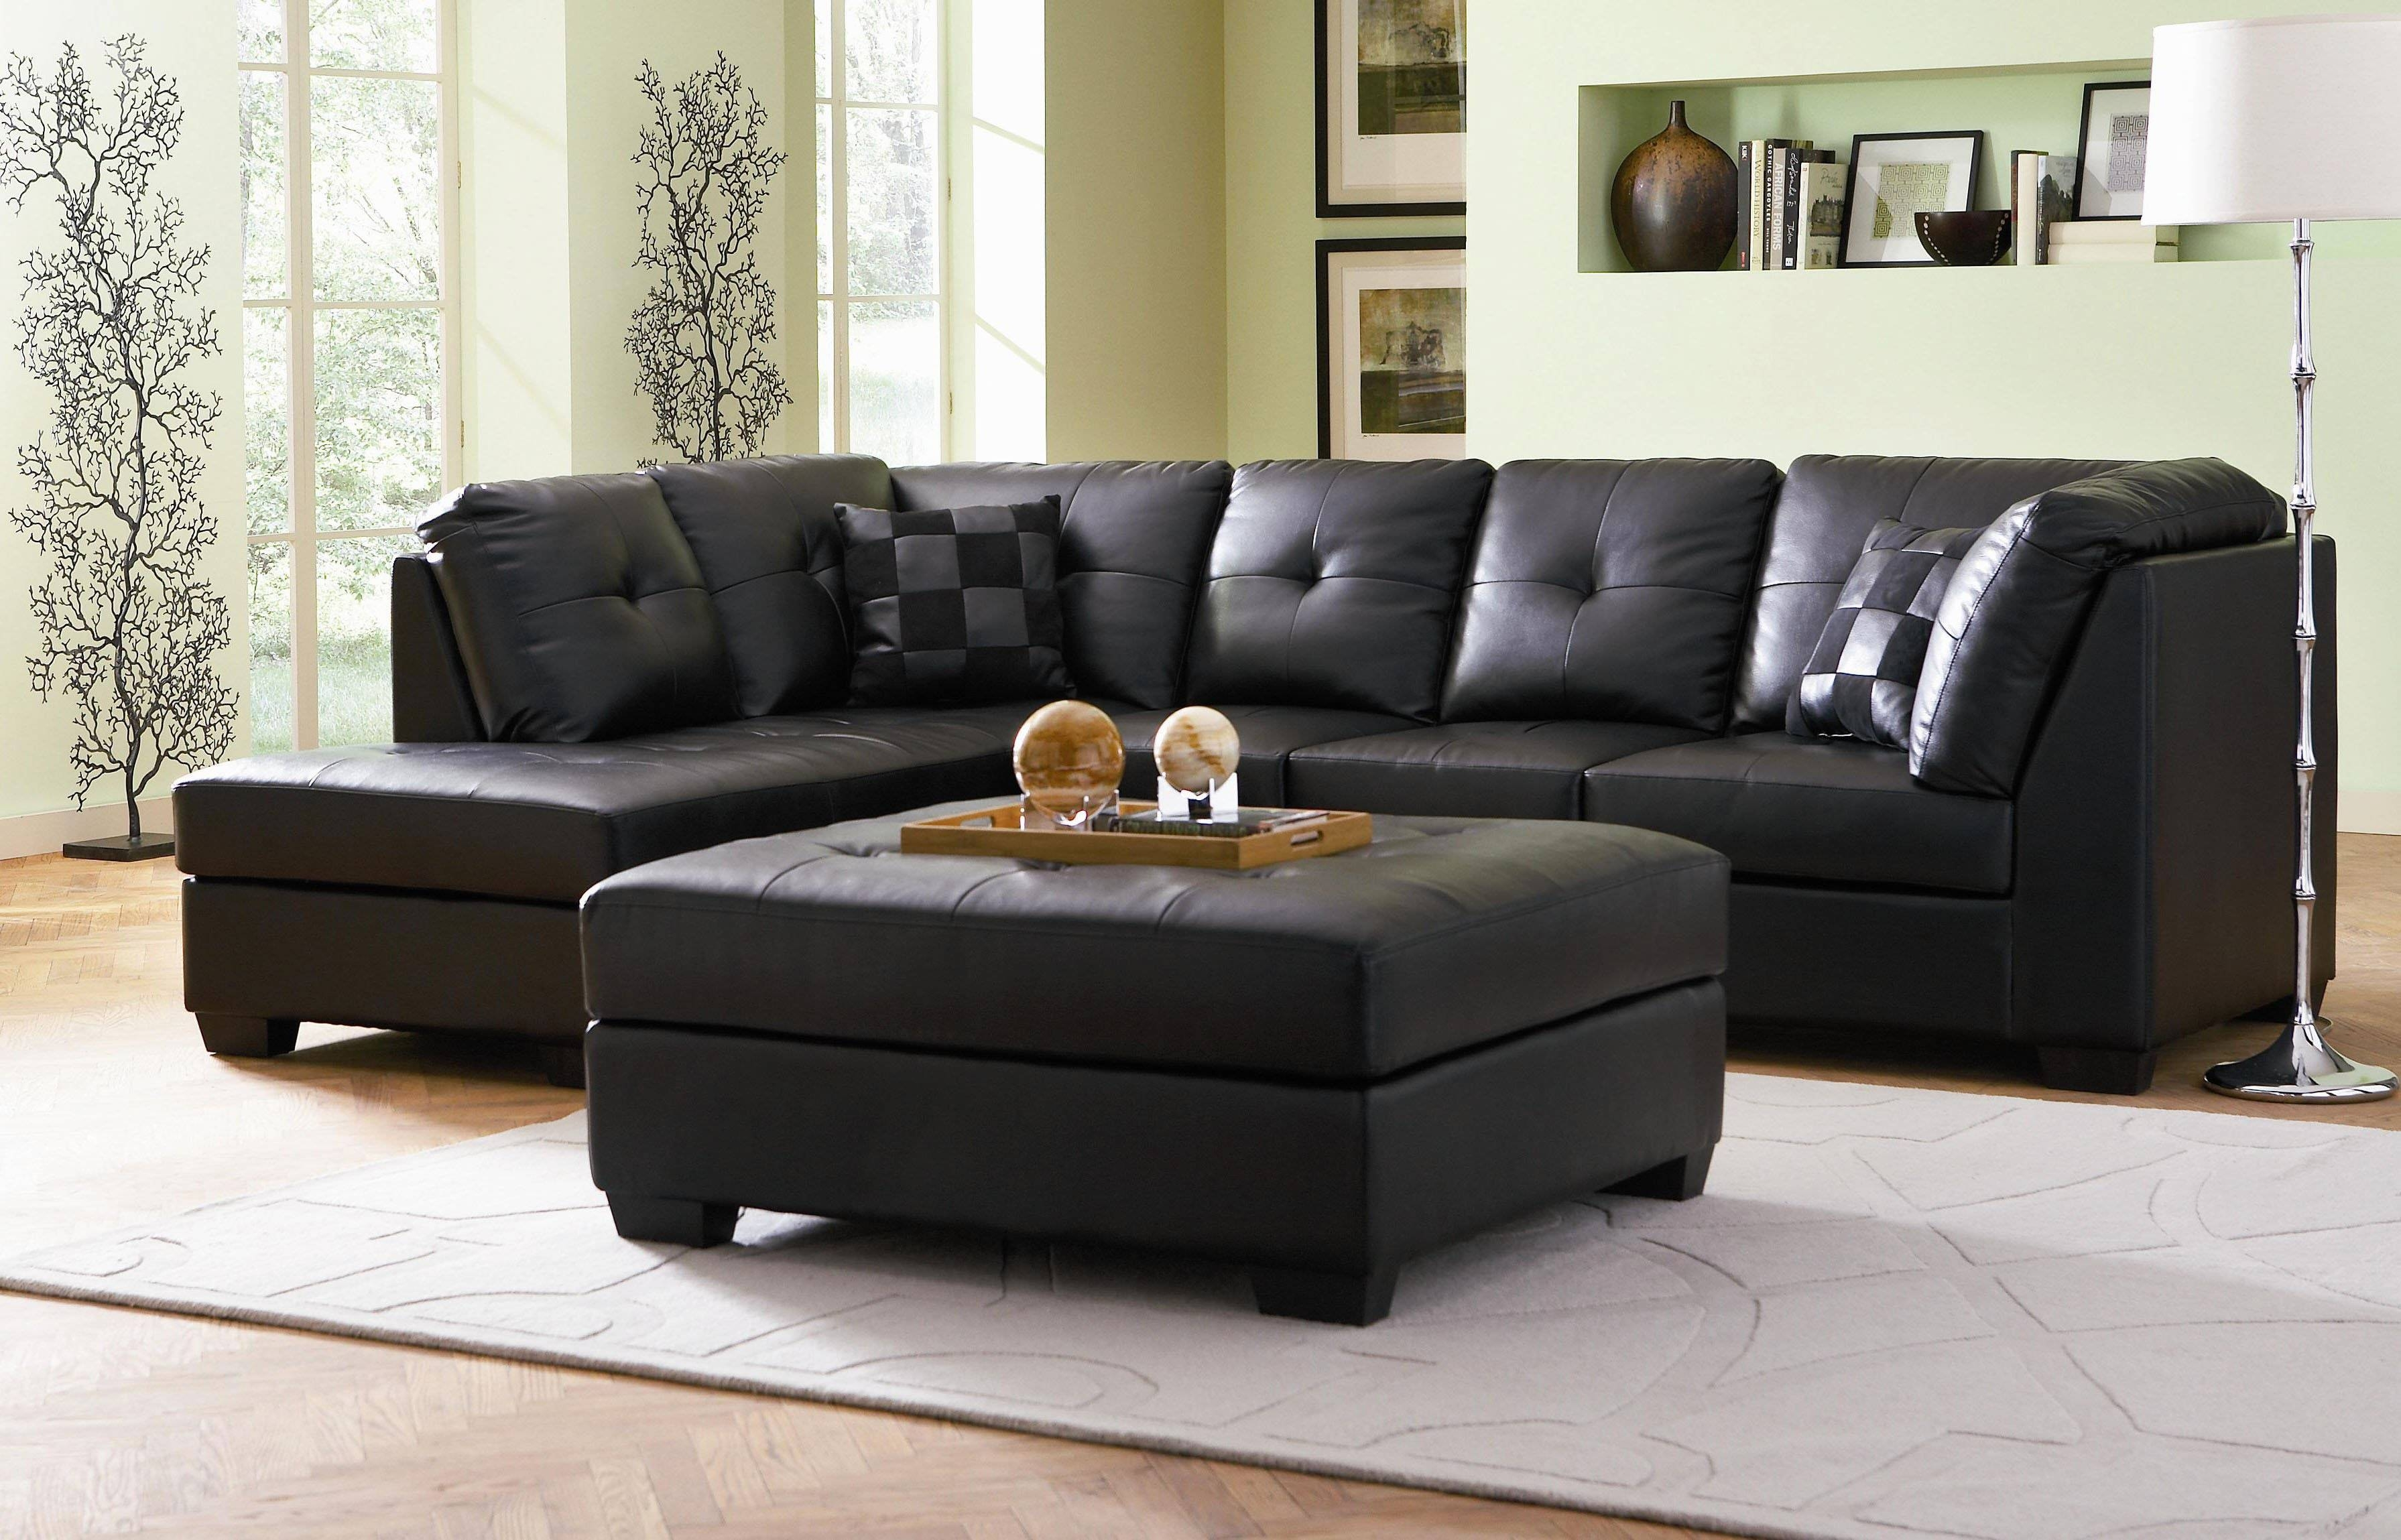 Sofas Center : Cheap Sectional Sofas For Sale Amazon Sofa Sets with regard to Cheap Sofas Houston (Image 19 of 30)